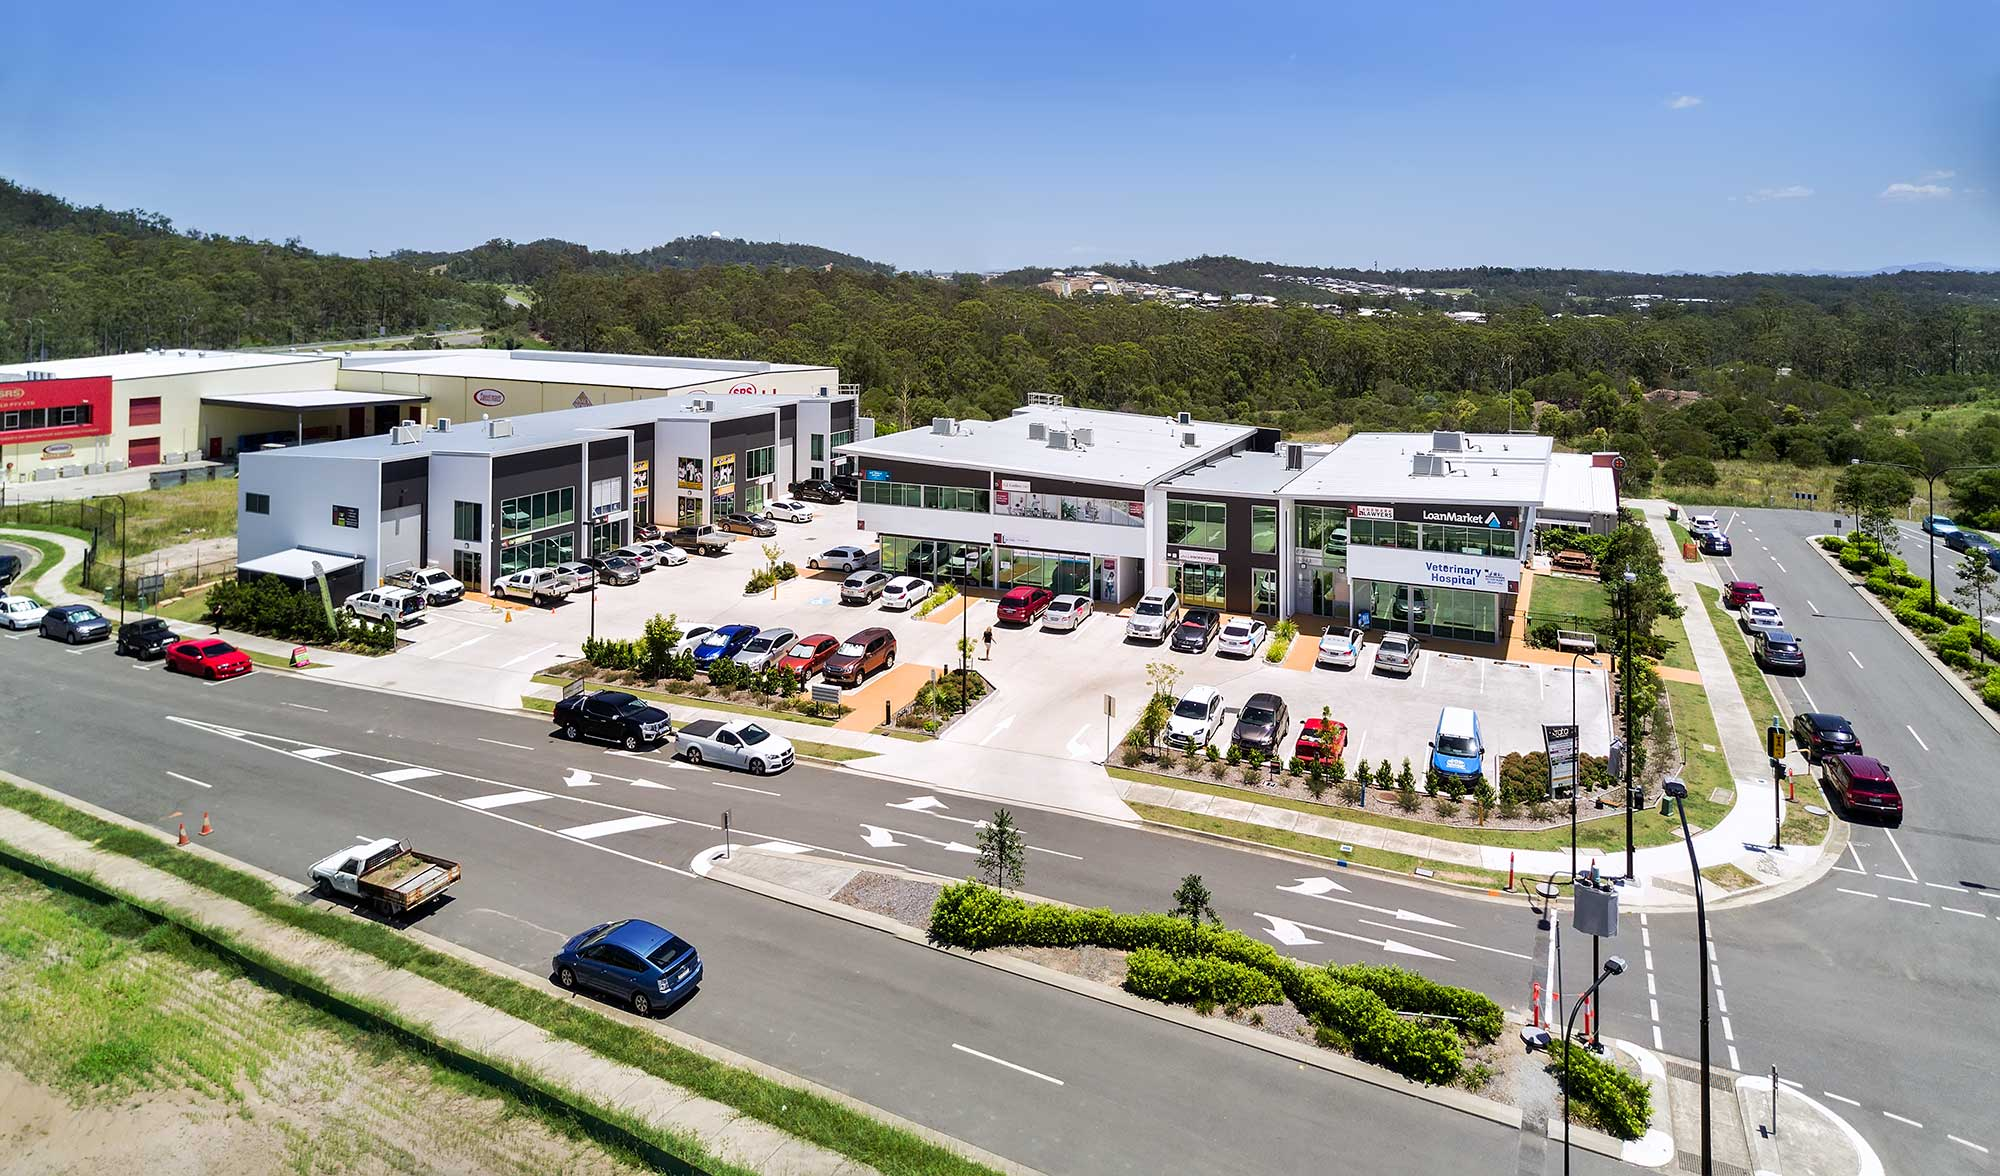 Aerial Drone Photographs Brookwater Tech Park to create impressive wide angle panorama